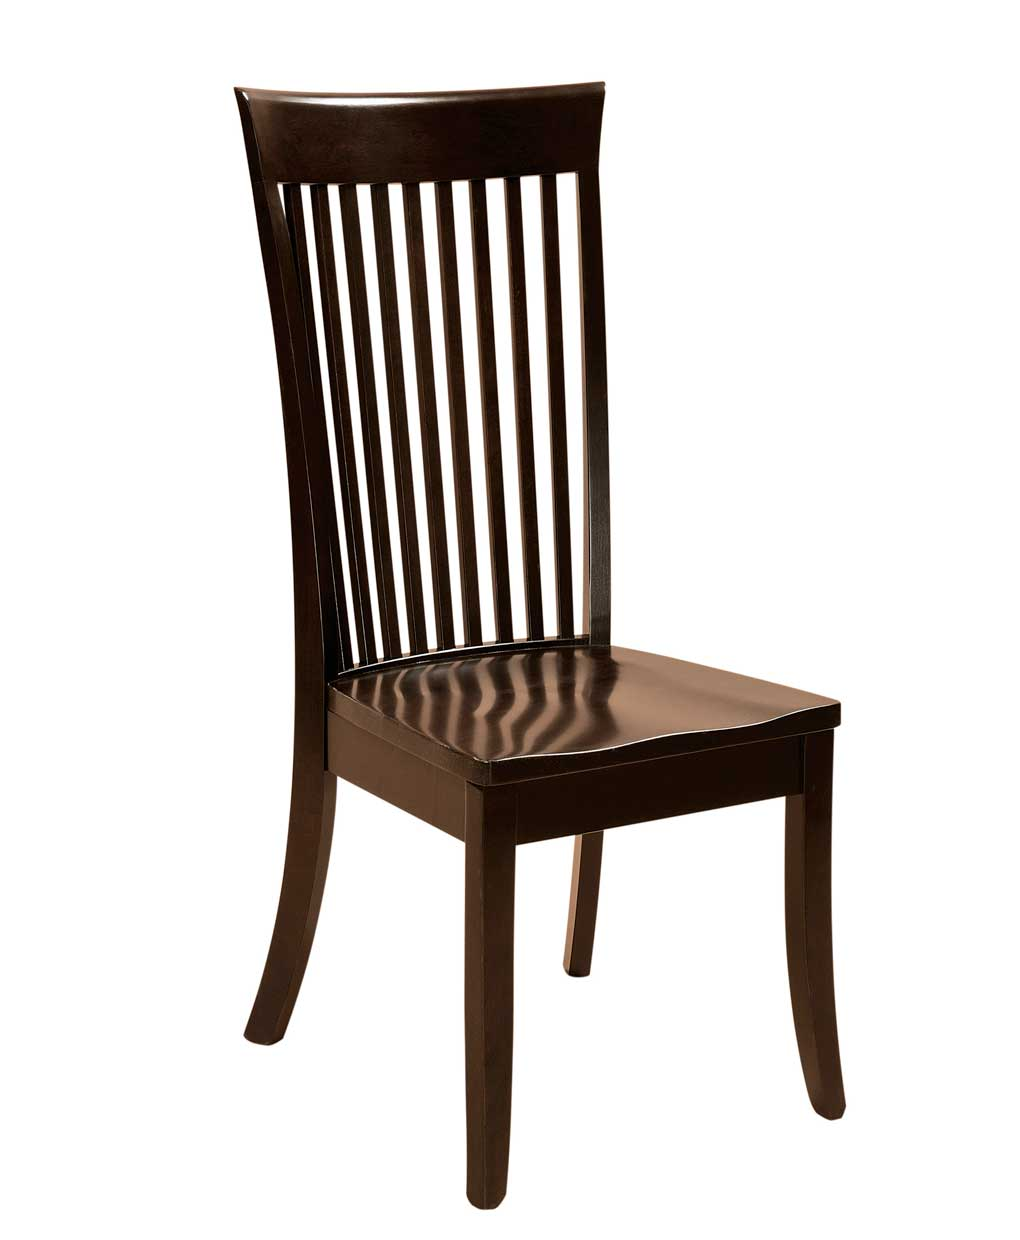 Carlisle Shaker Dining Chairs Amish Direct Furniture